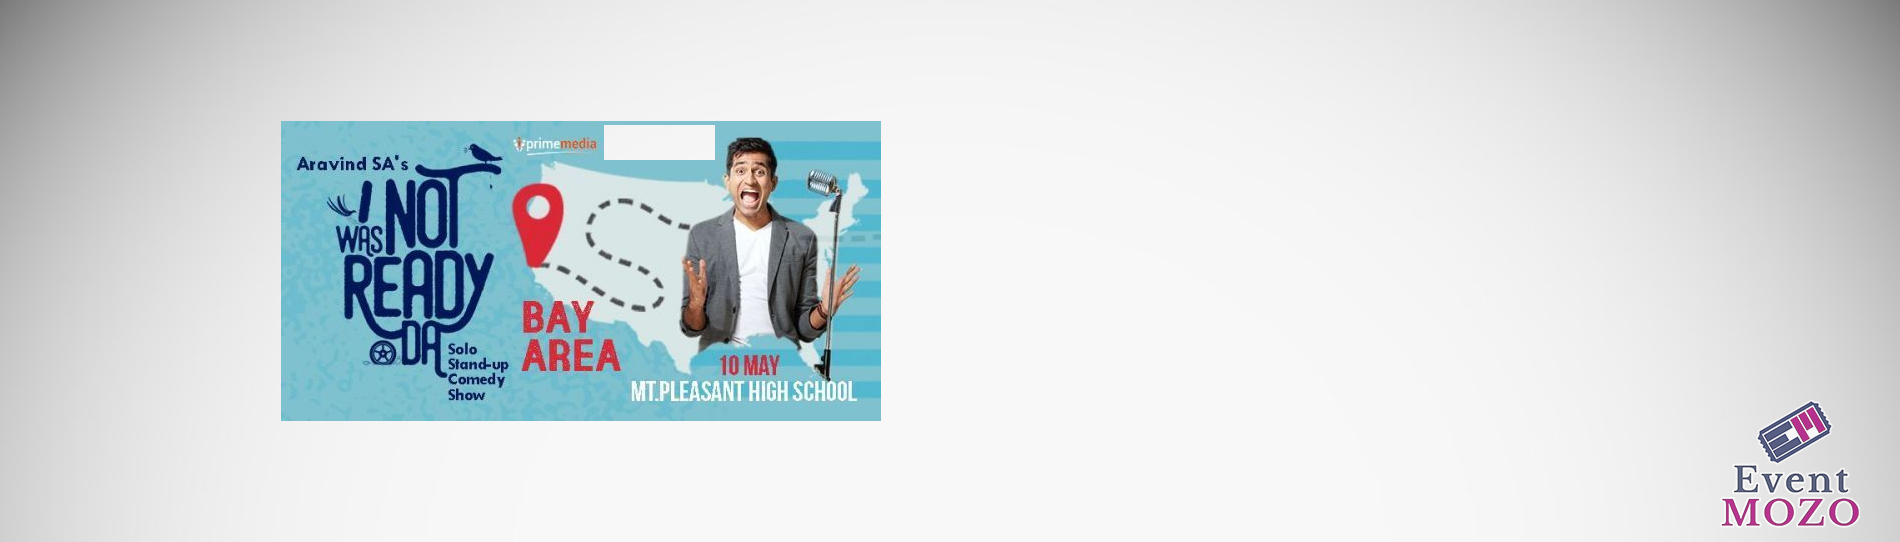 EventMozo Aravind SA Stand-Up Comedy Live in Bay Area - May 10